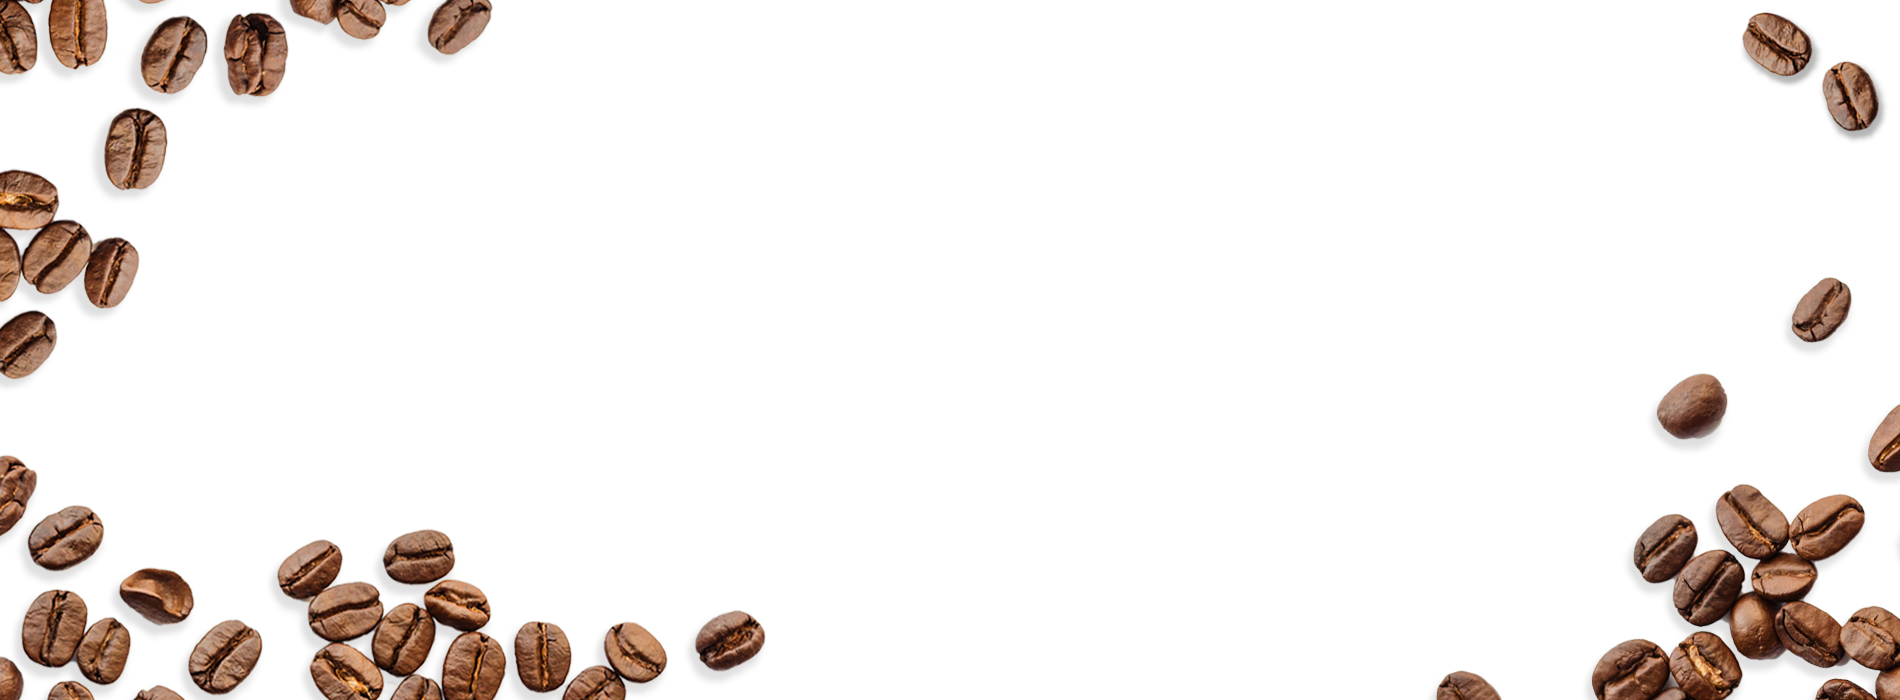 Download Scattered Coffee Beans On White Background   Coffee Beans 1900x700